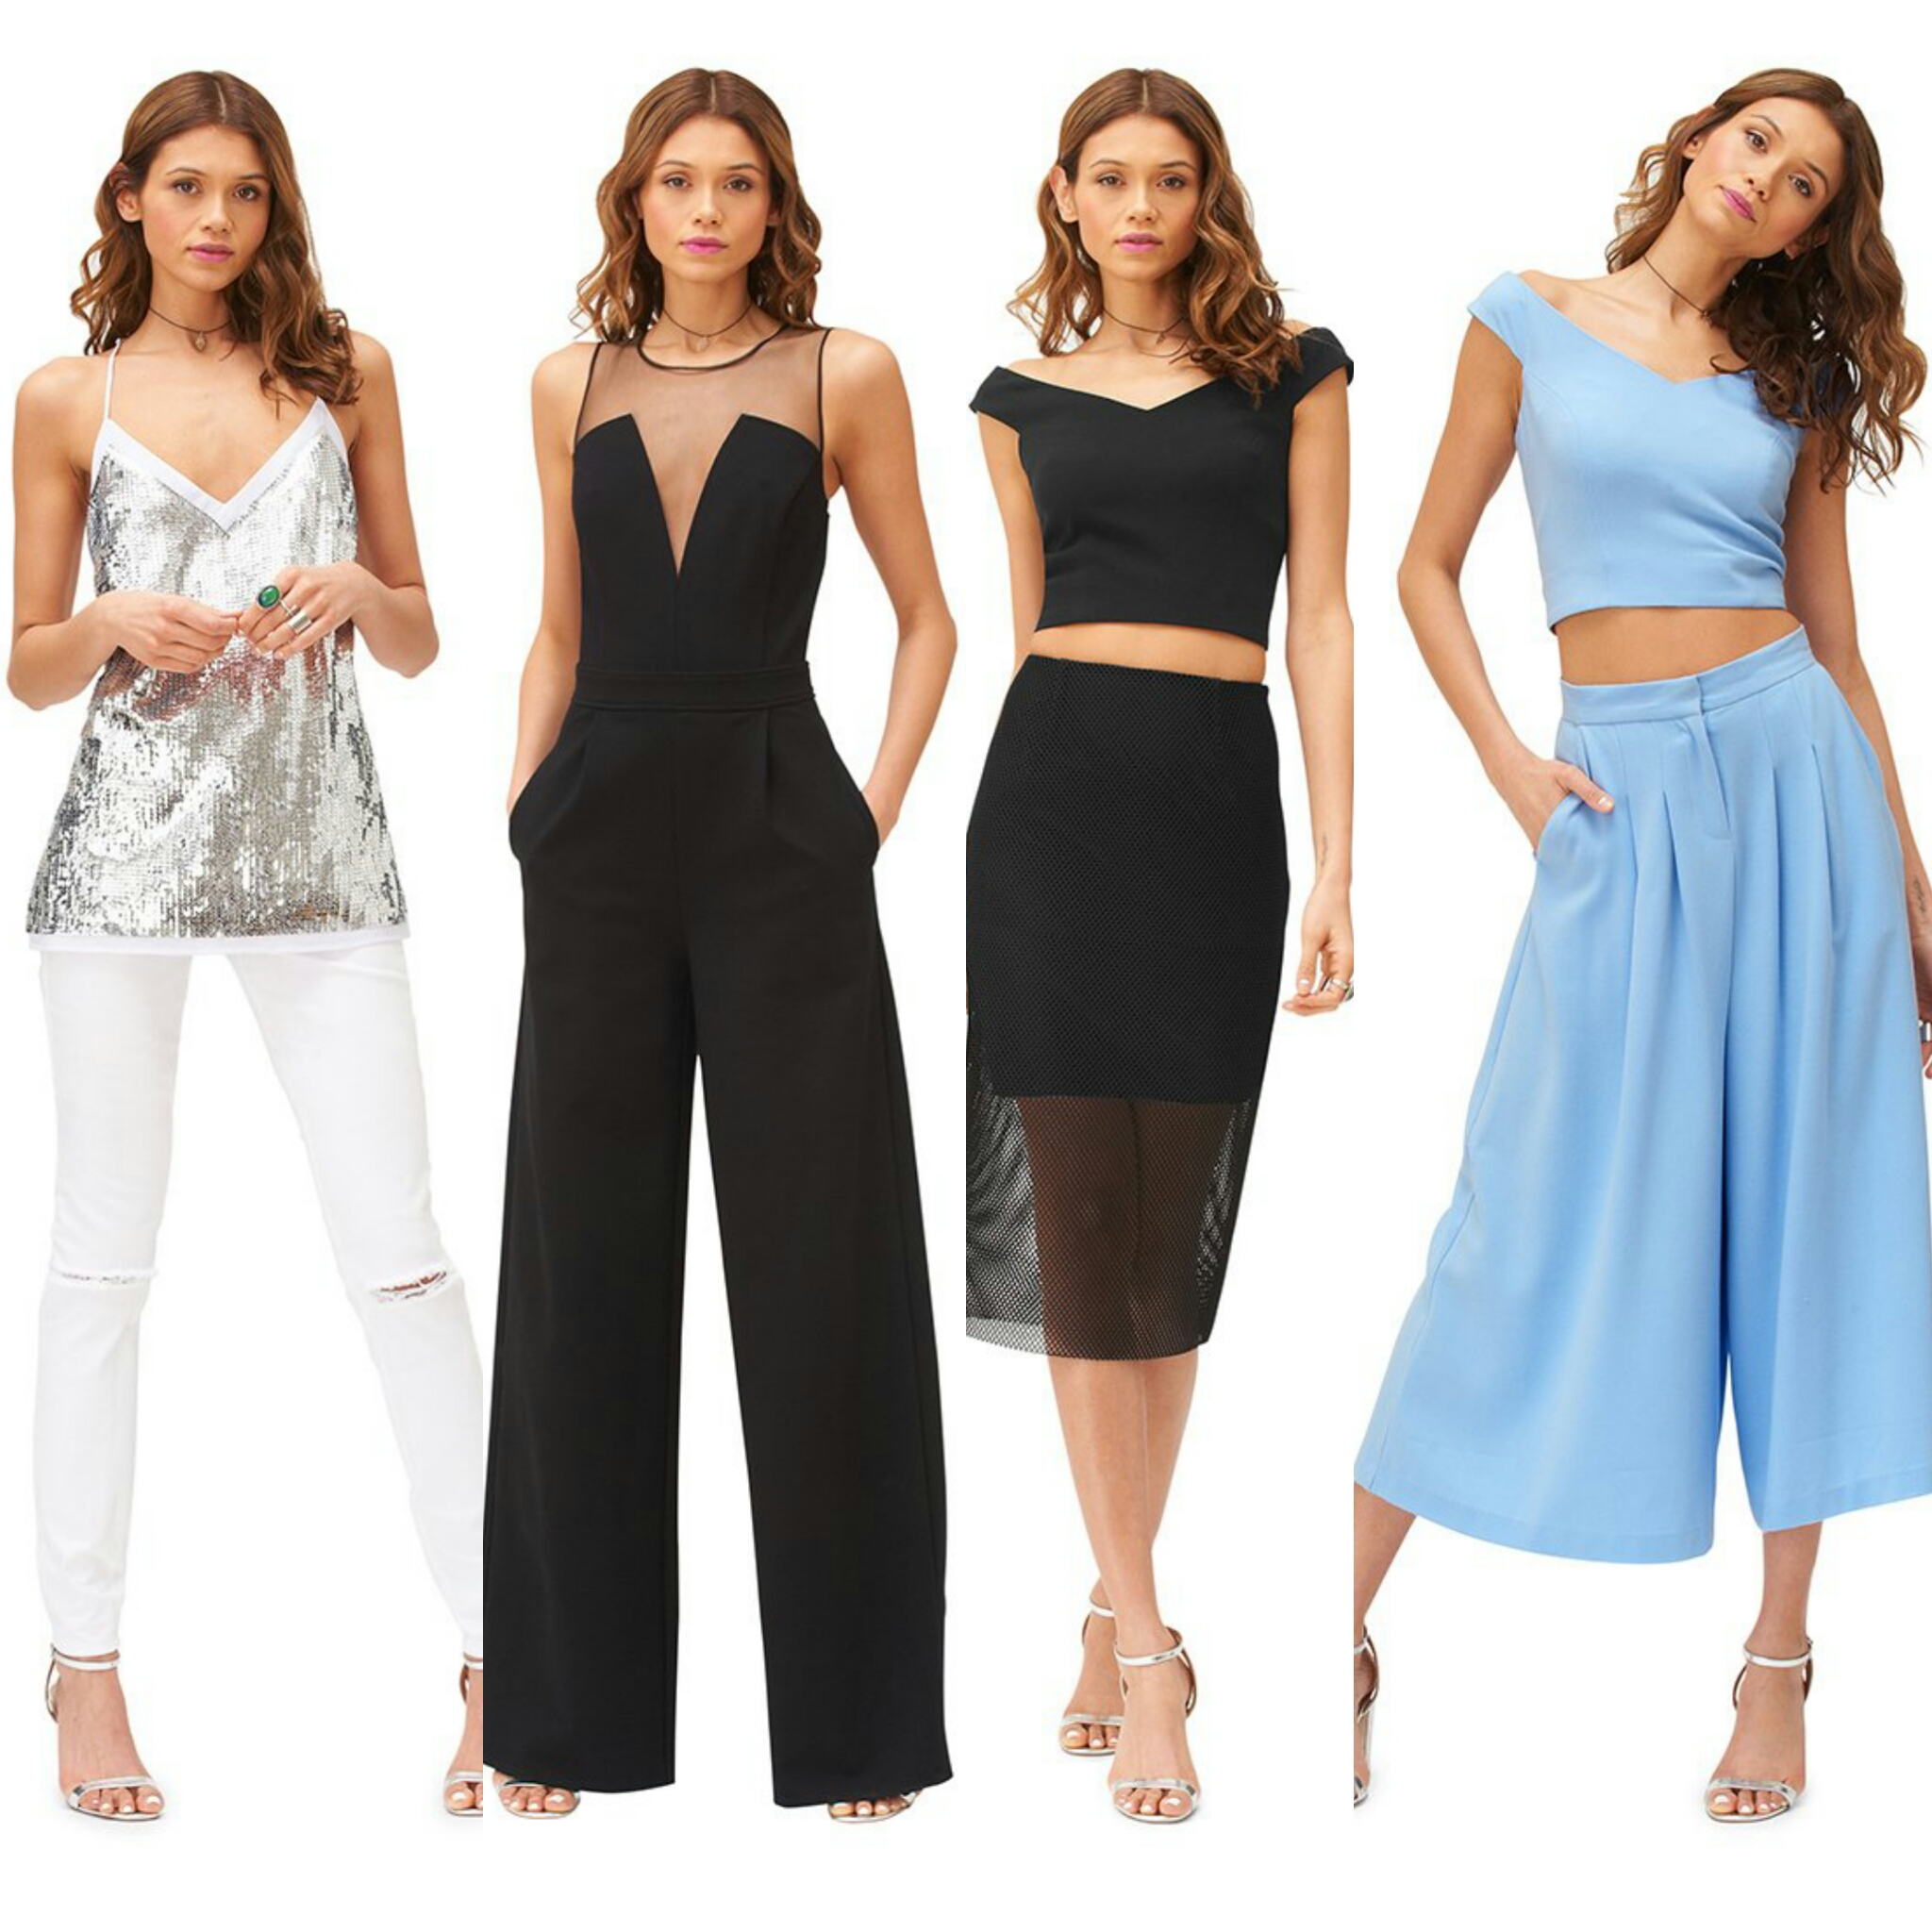 TTYA4LTS Spring Collection